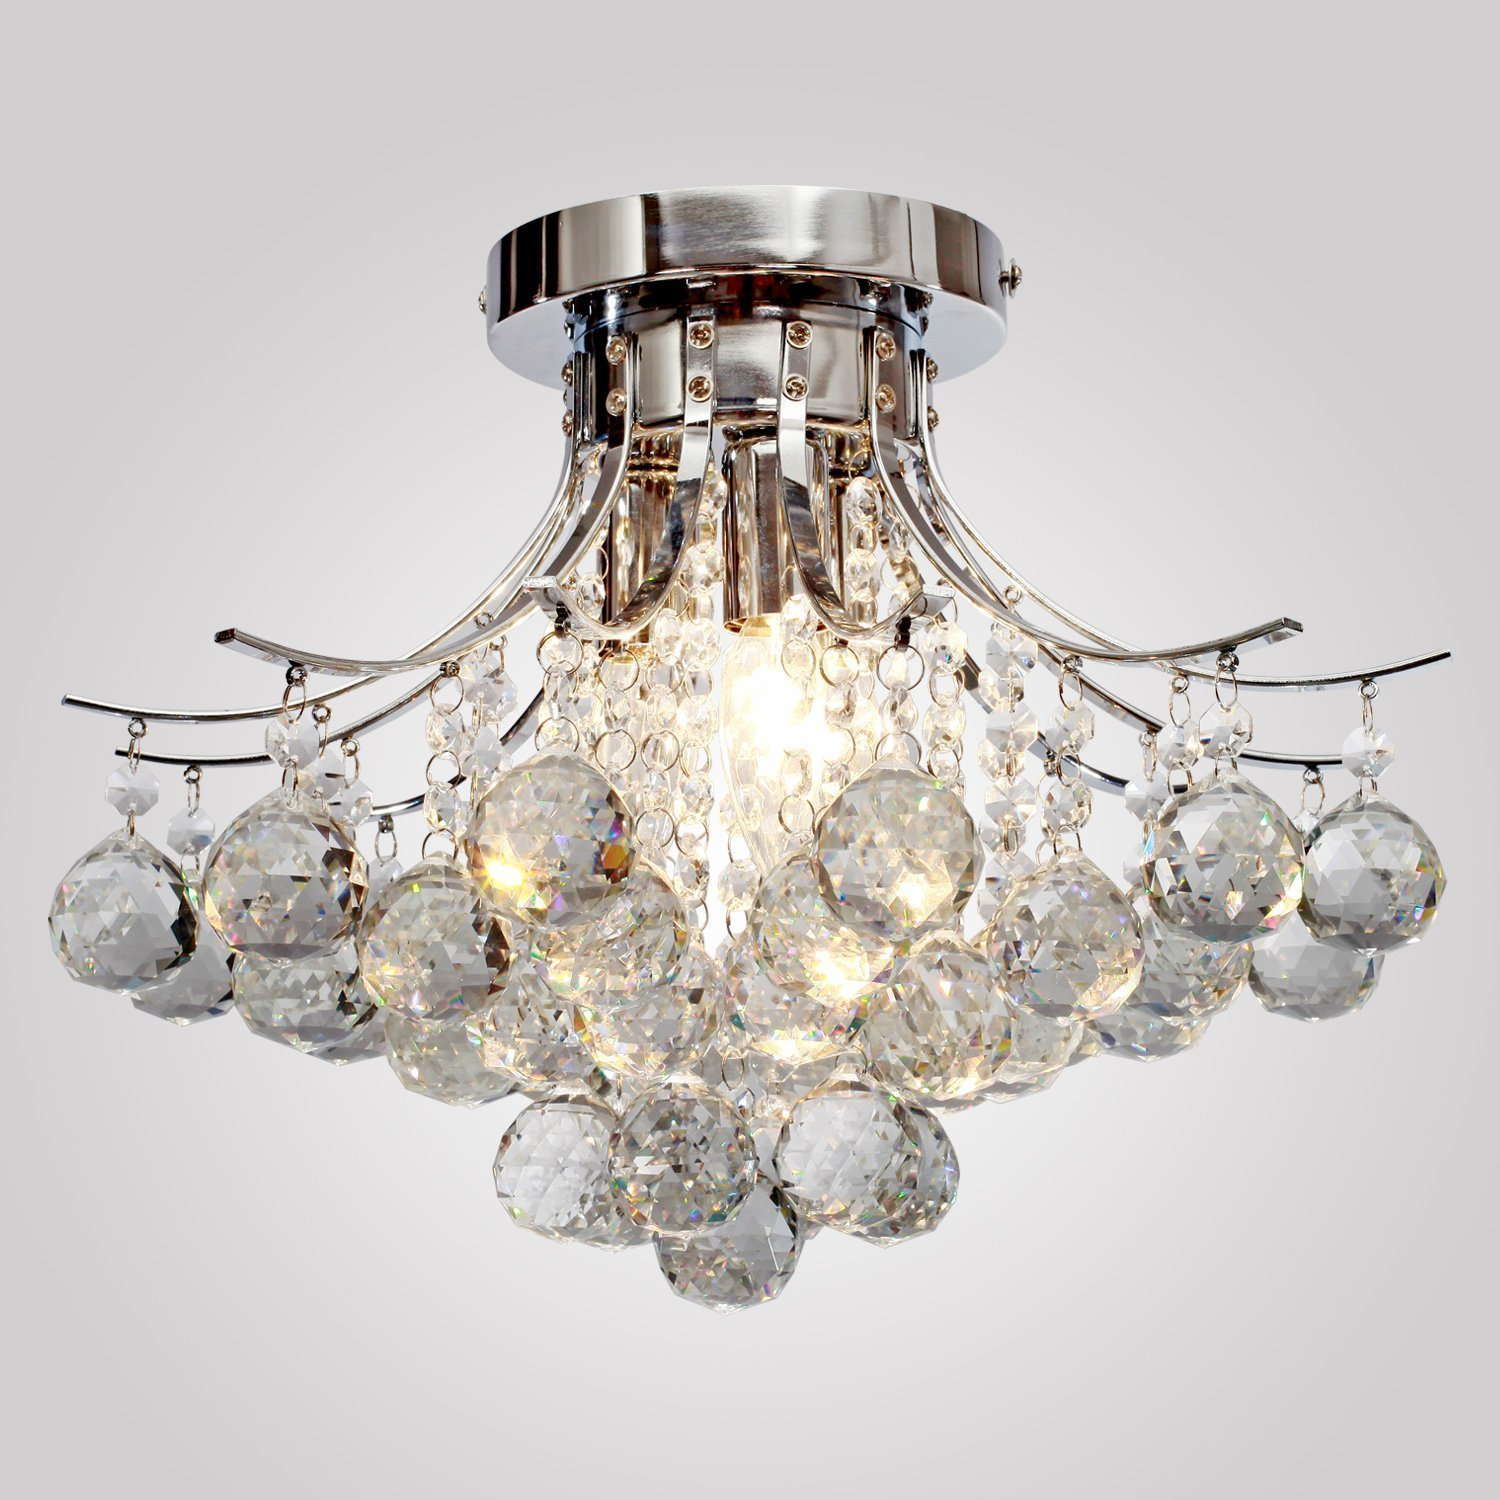 uk dimmable light bunch plumen products led bulb wyatt chandelier whirly